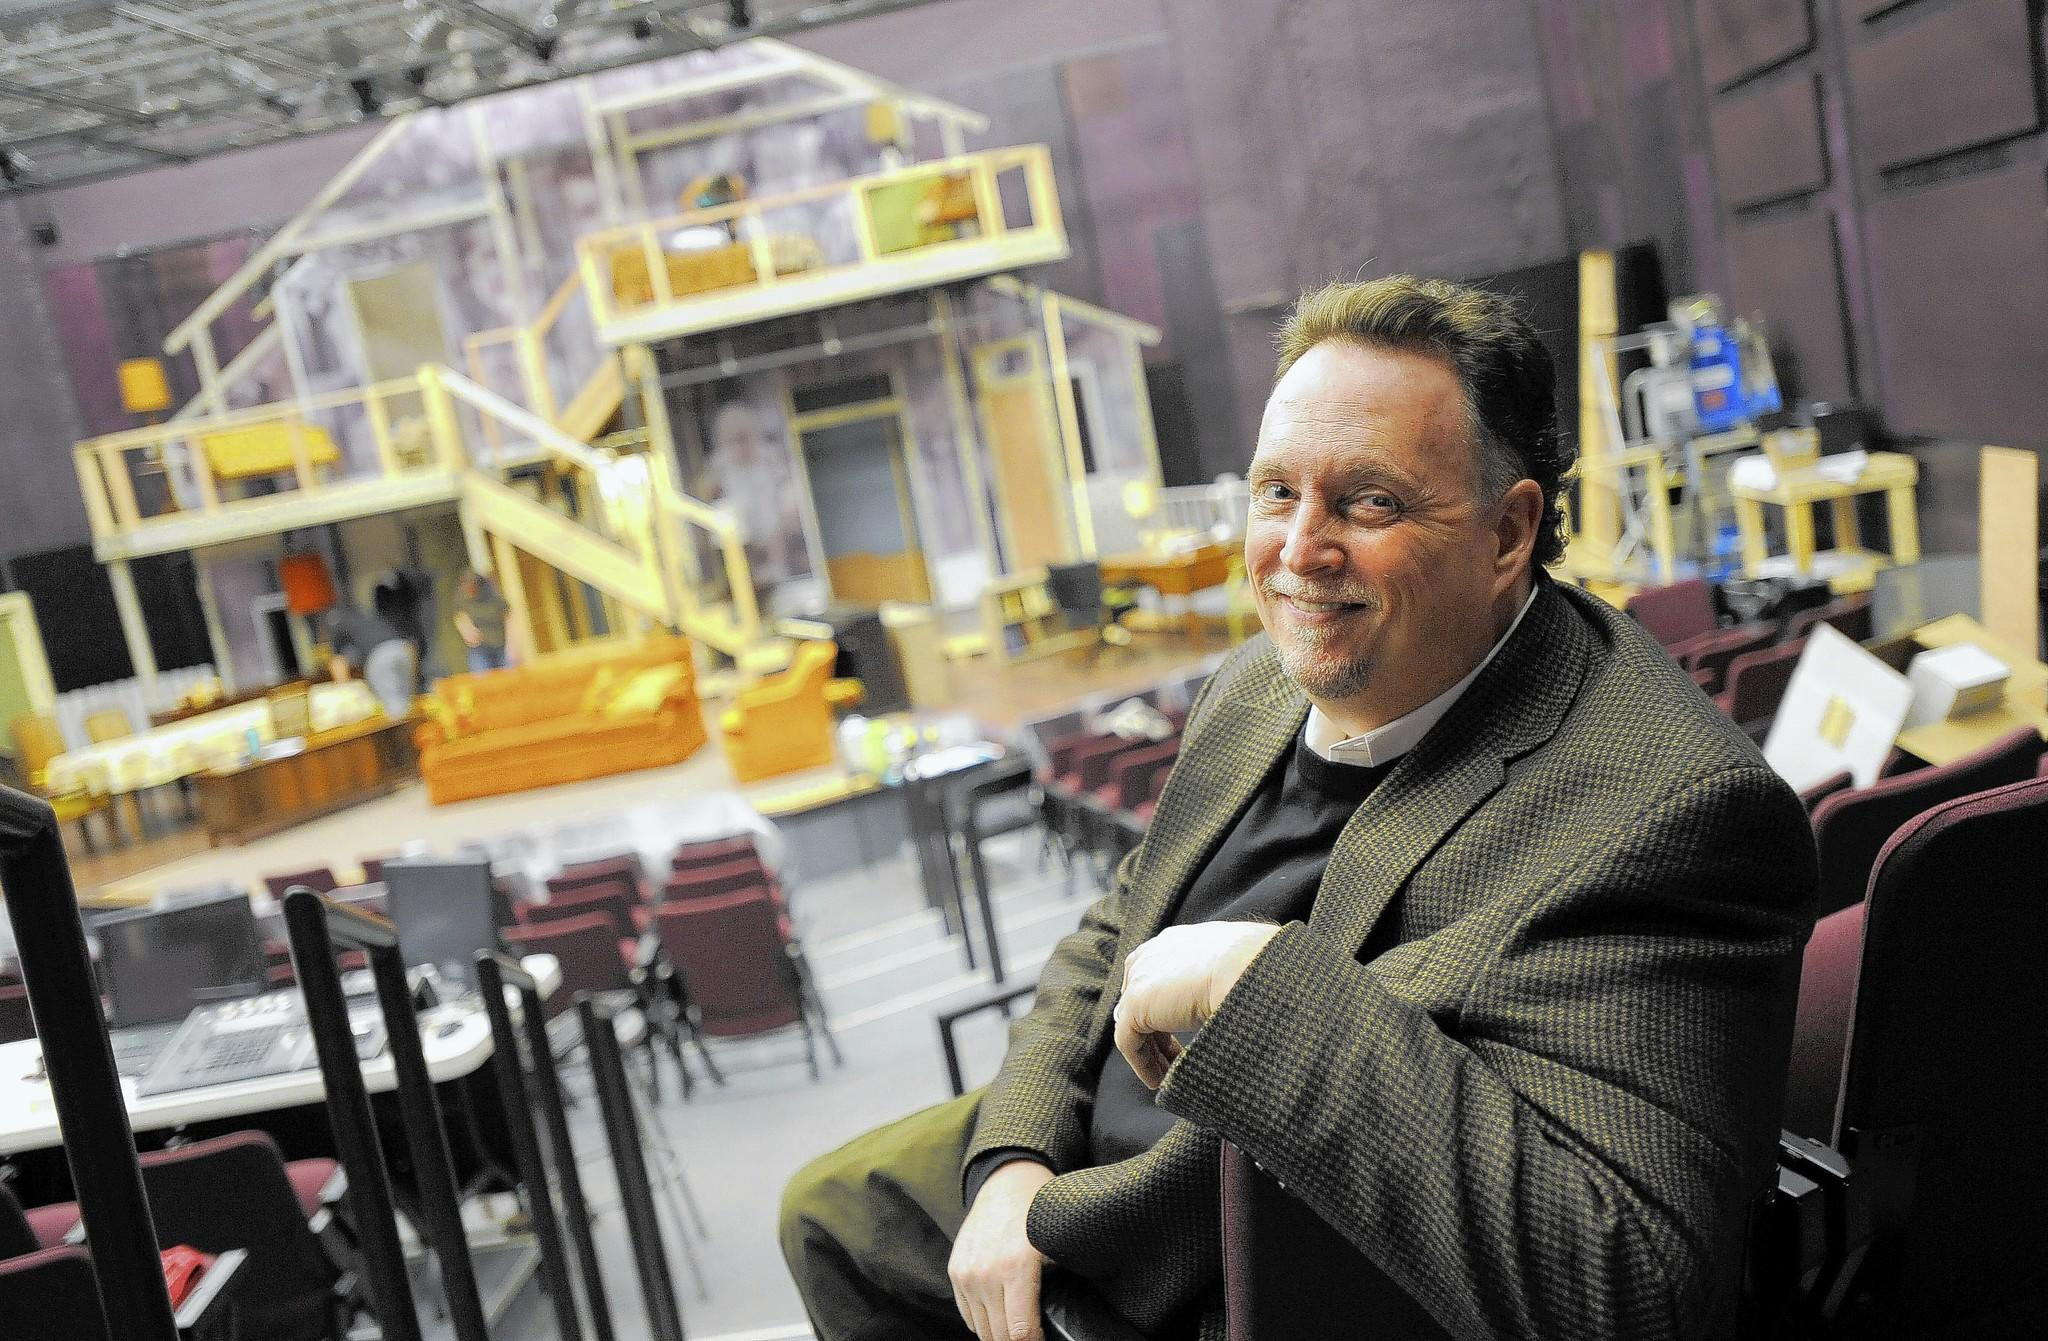 Everyman Theatre Artistic Director Vincent M. Lancisi wanted to make sure the 2014-15 season was as strong as 2013-14